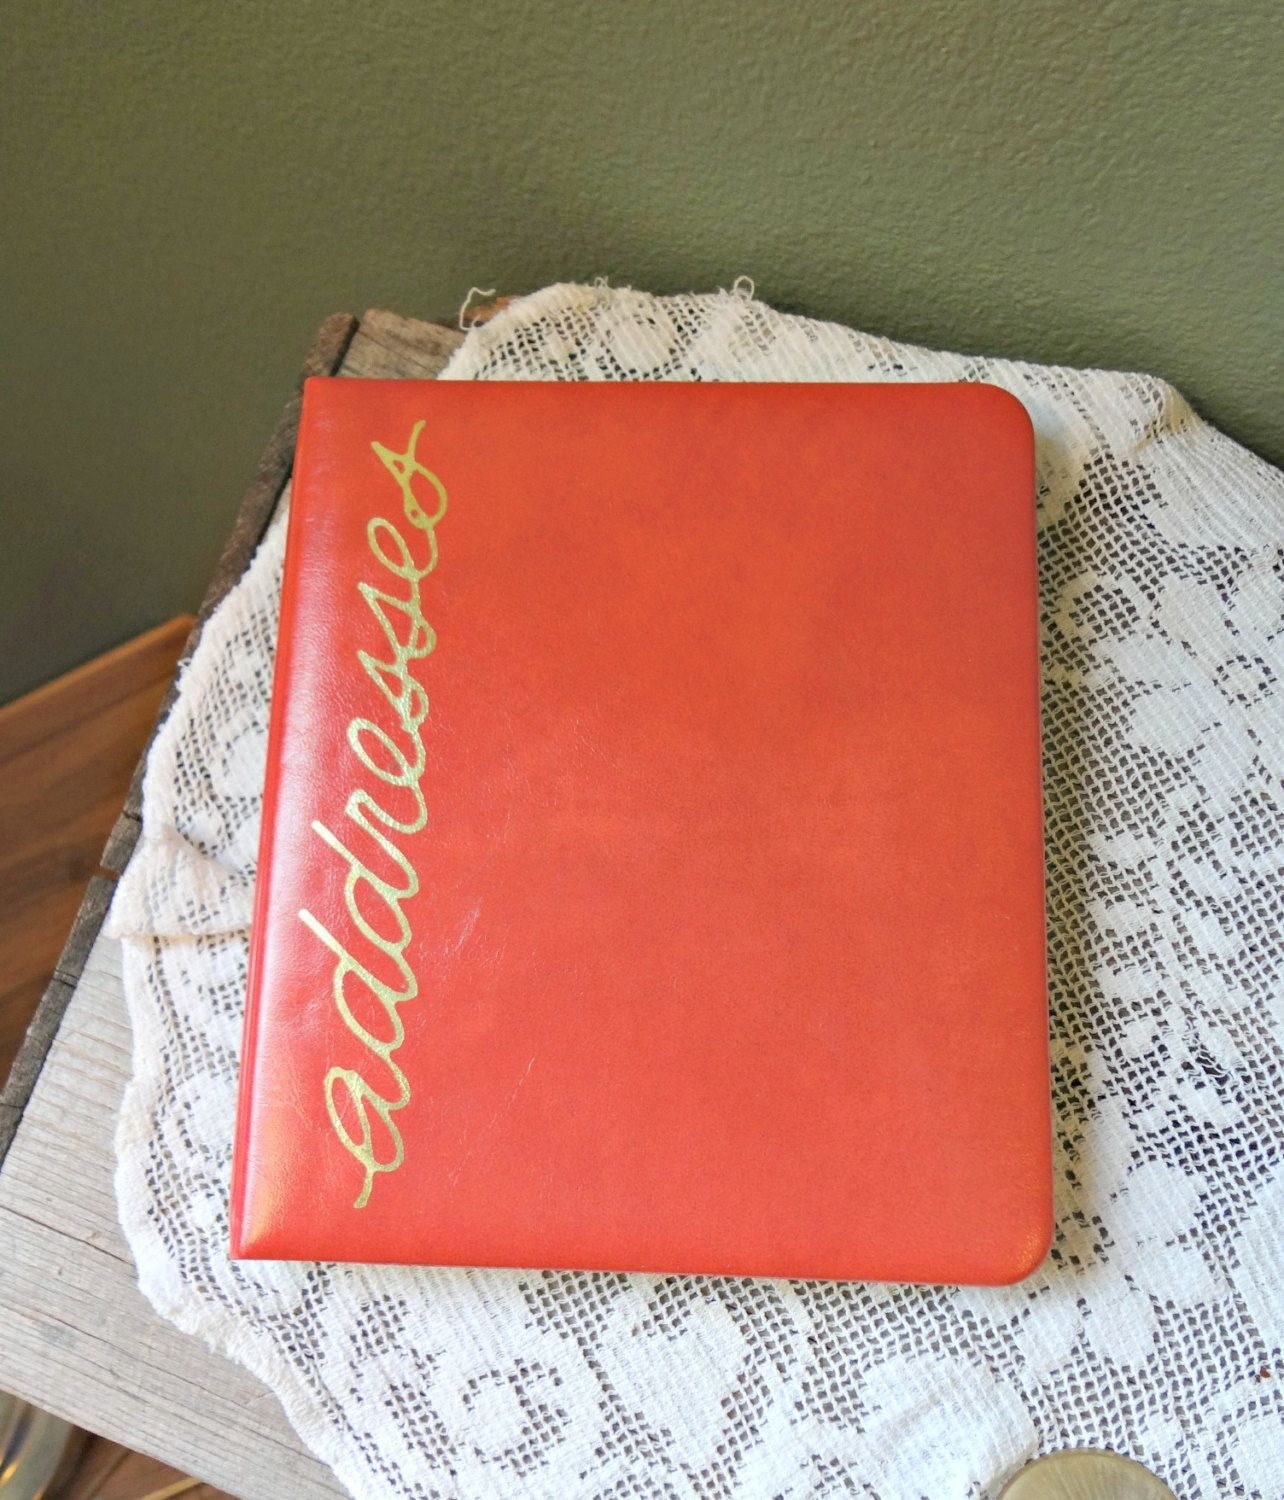 Address book, 70s, Red Orange vinyl, loose leaf, C R Gibson refill set no 2210, extra pages, 7.5 x 6.5 inches by EKRdoodleVintage on Etsy